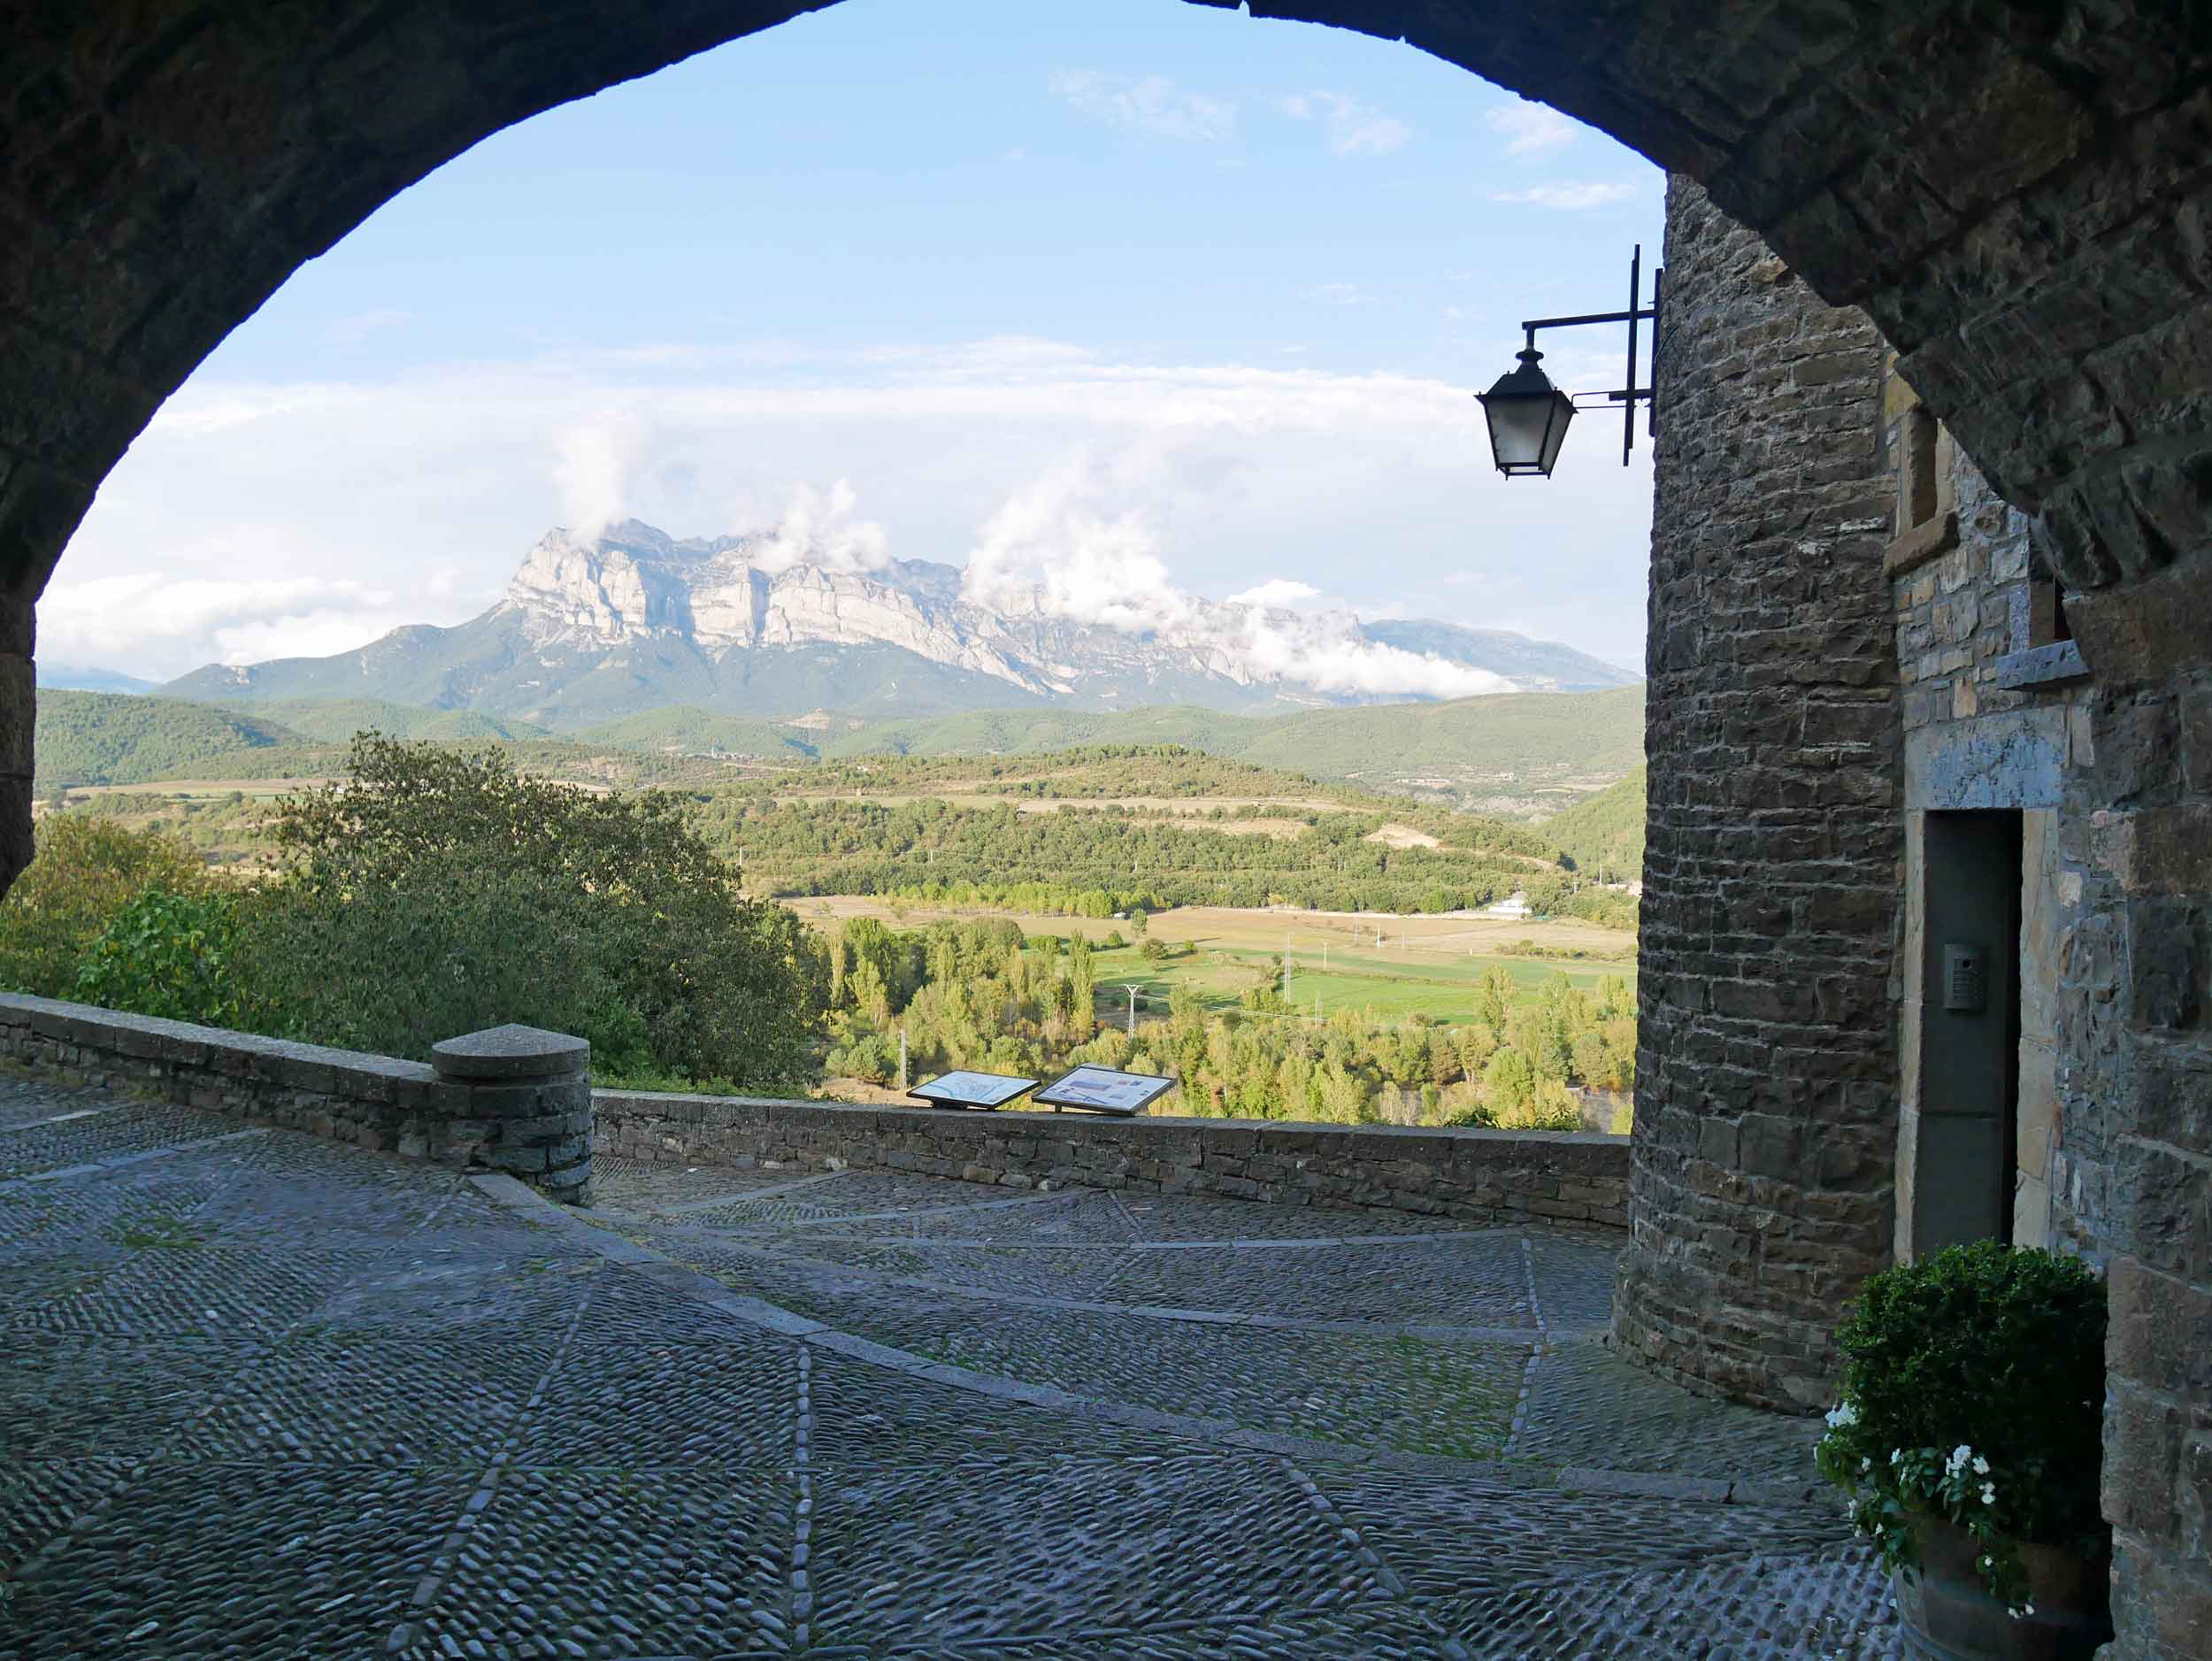 Our charming apartment was nestled in the heart of the old village center and offered unparalleled views of the mountains beyond.